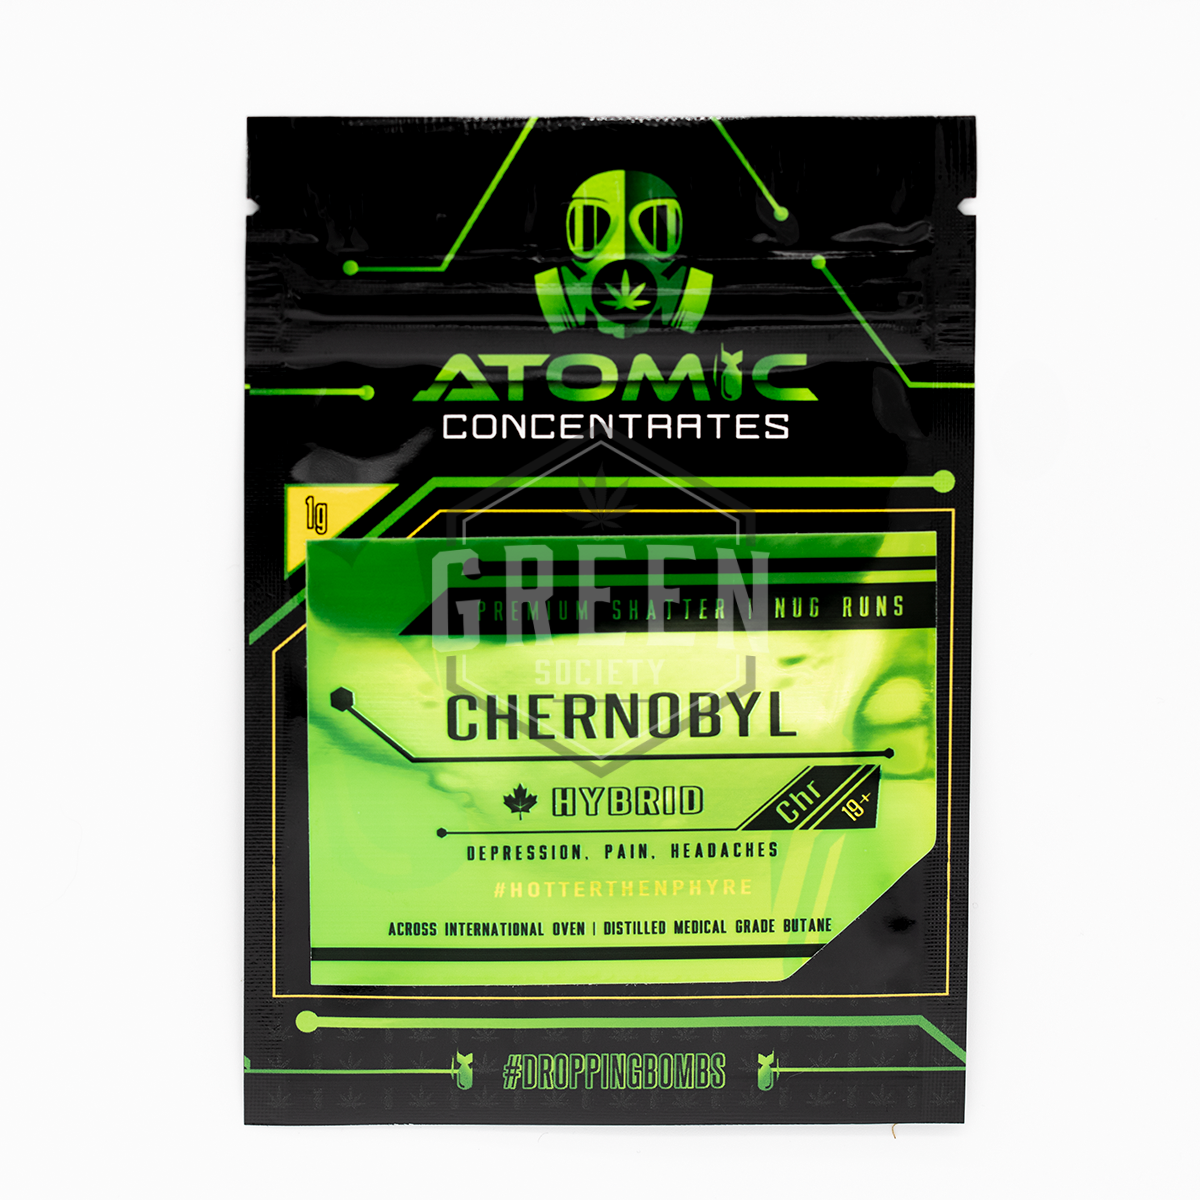 Chernobyl Shatter by Atomic Concentrates by Green Society - Image © 2018 Green Society. All Rights Reserved.